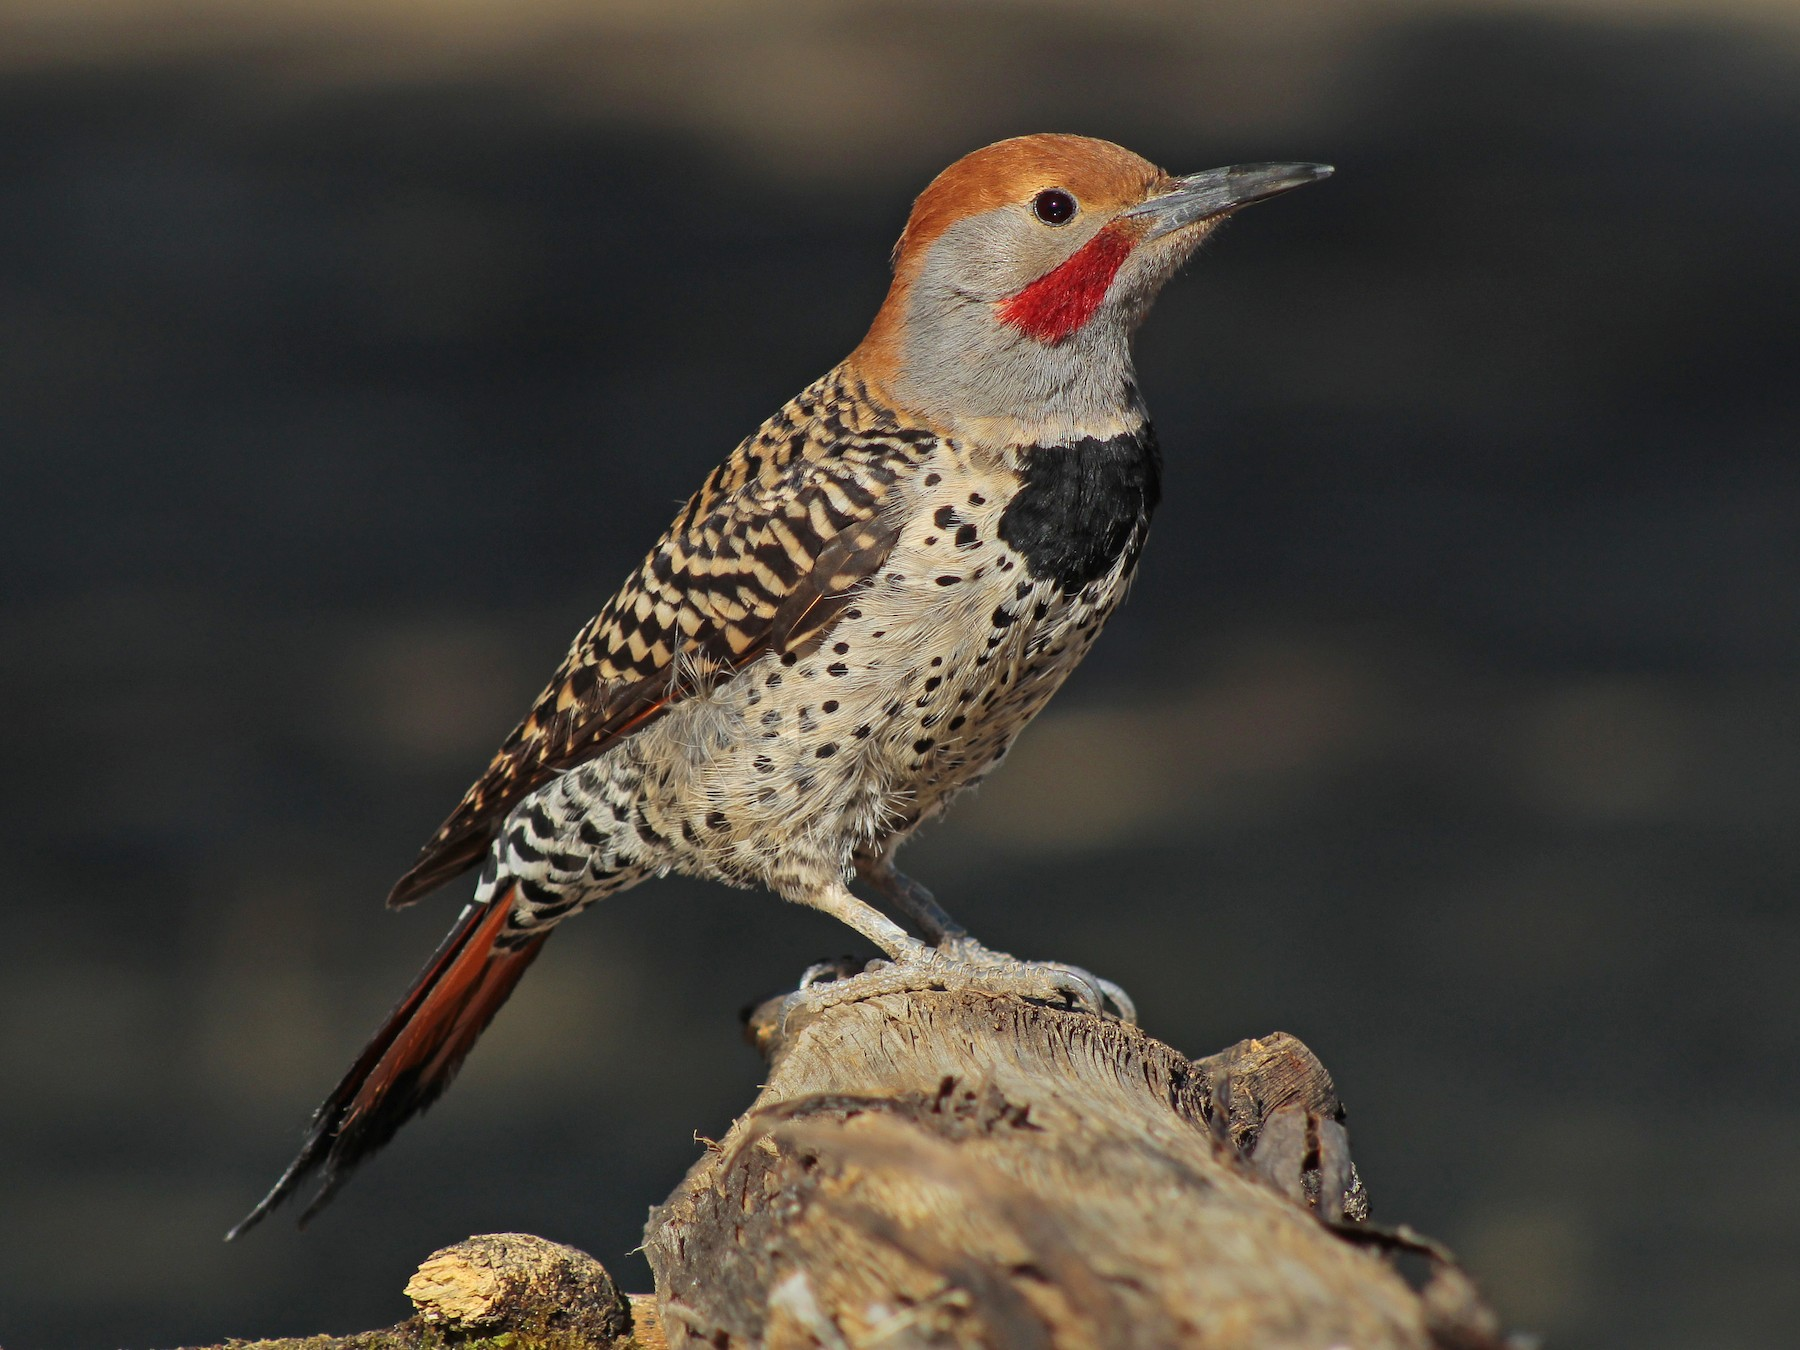 Northern Flicker - Esteban  Matias